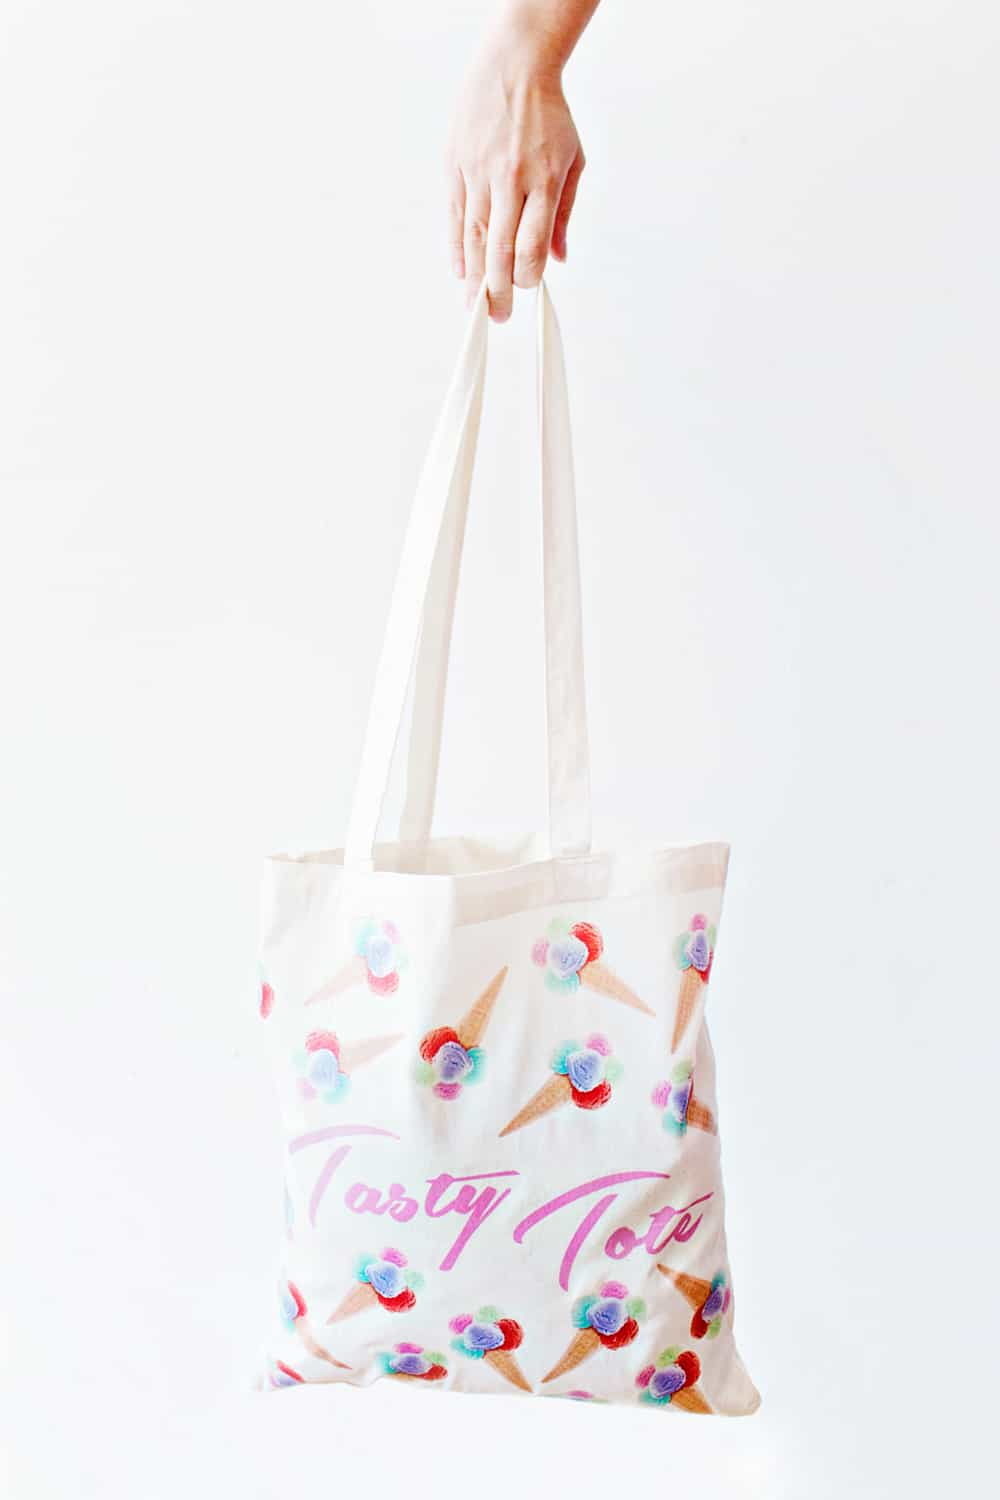 Tasty Tote from Lana Red Studio